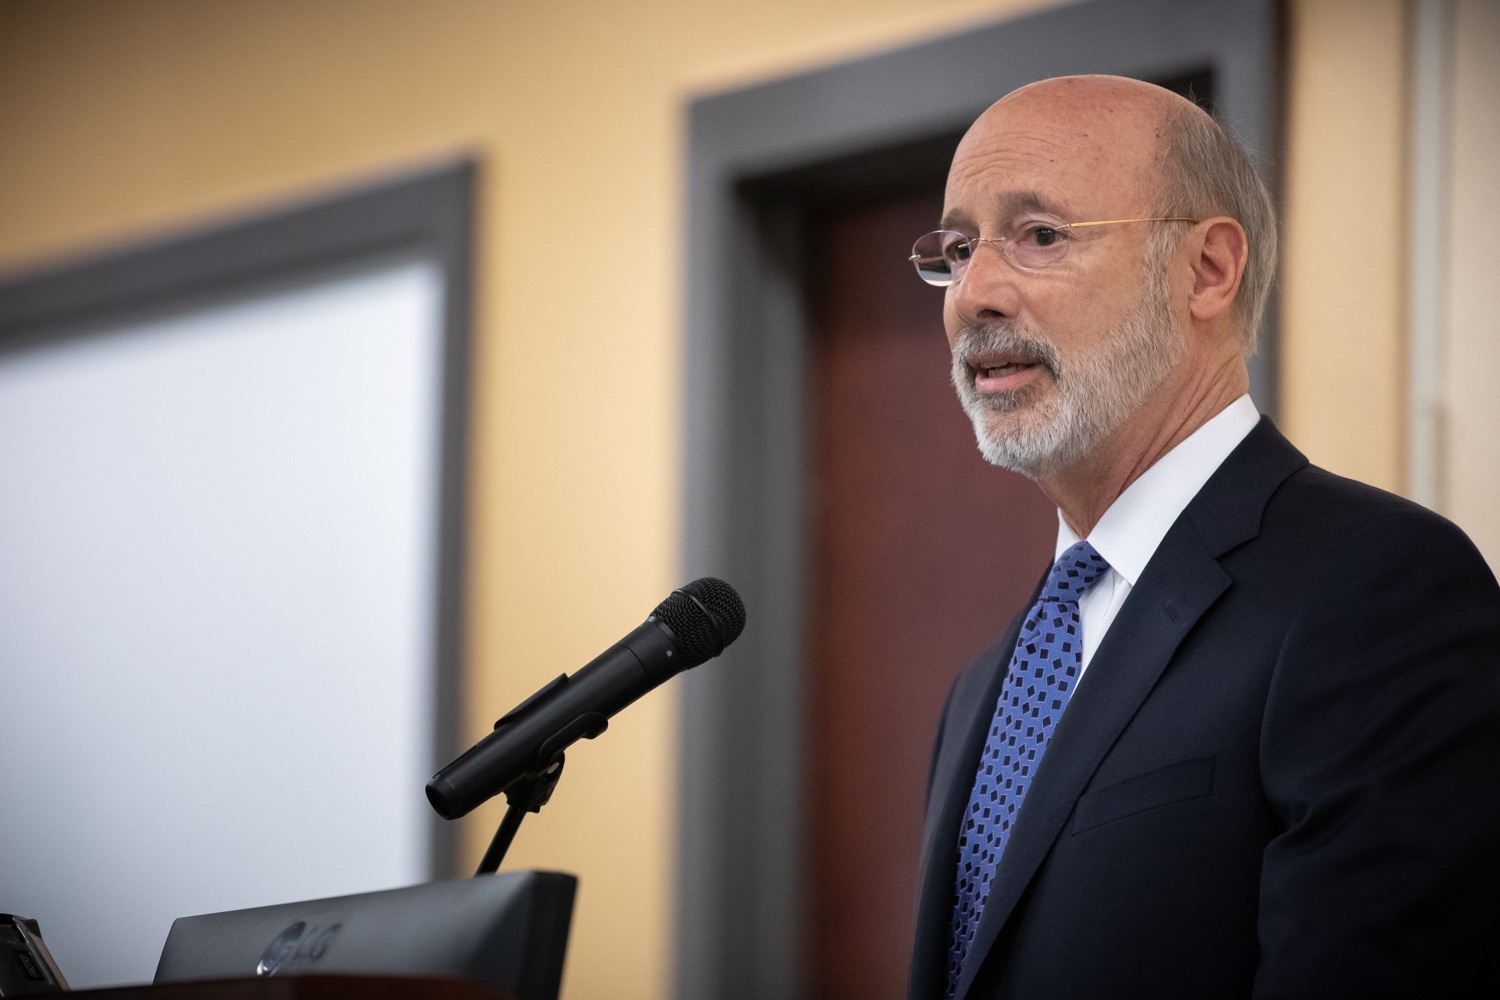 "<a href=""http://filesource.abacast.com/commonwealthofpa/photo/17598_gov_charter_schools_dz_005.jpg"" target=""_blank"">⇣ Download Photo<br></a>Pennsylvania Governor Tom Wolf speaks about charter school reform at a meeting of the Pennsylvania Association of School Administrators.  Governor Tom Wolfs commonsense plan to improve the educational quality of charter schools and control rising costs will save nearly $280 million a year, the governor told the Pennsylvania Association of School Administrators today. The governor has a three-part plan to fix Pennsylvanias charter school law which is regarded as one of the worst in the nation.  - Harrisburg, PA. Friday, November 15, 2019."